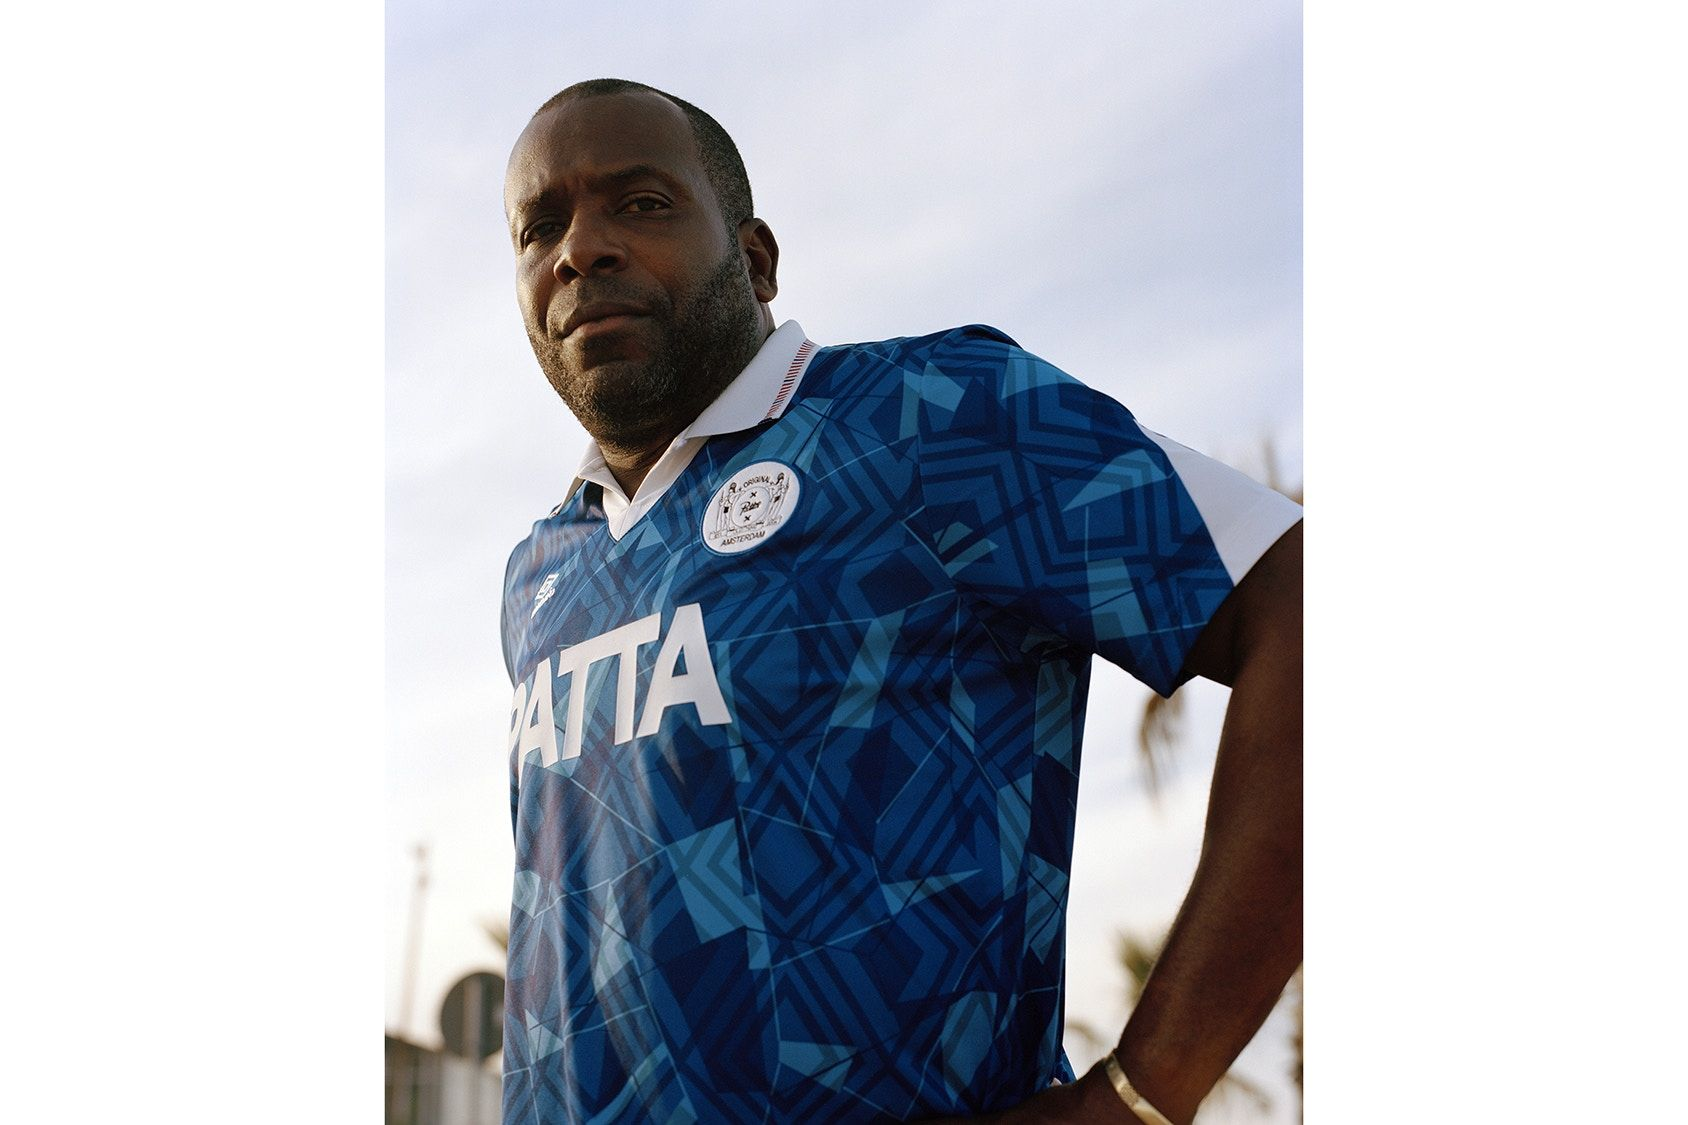 Download Patta Umbro Reunite For Soccer Jersey Collection Soccer Jersey Soccer Football